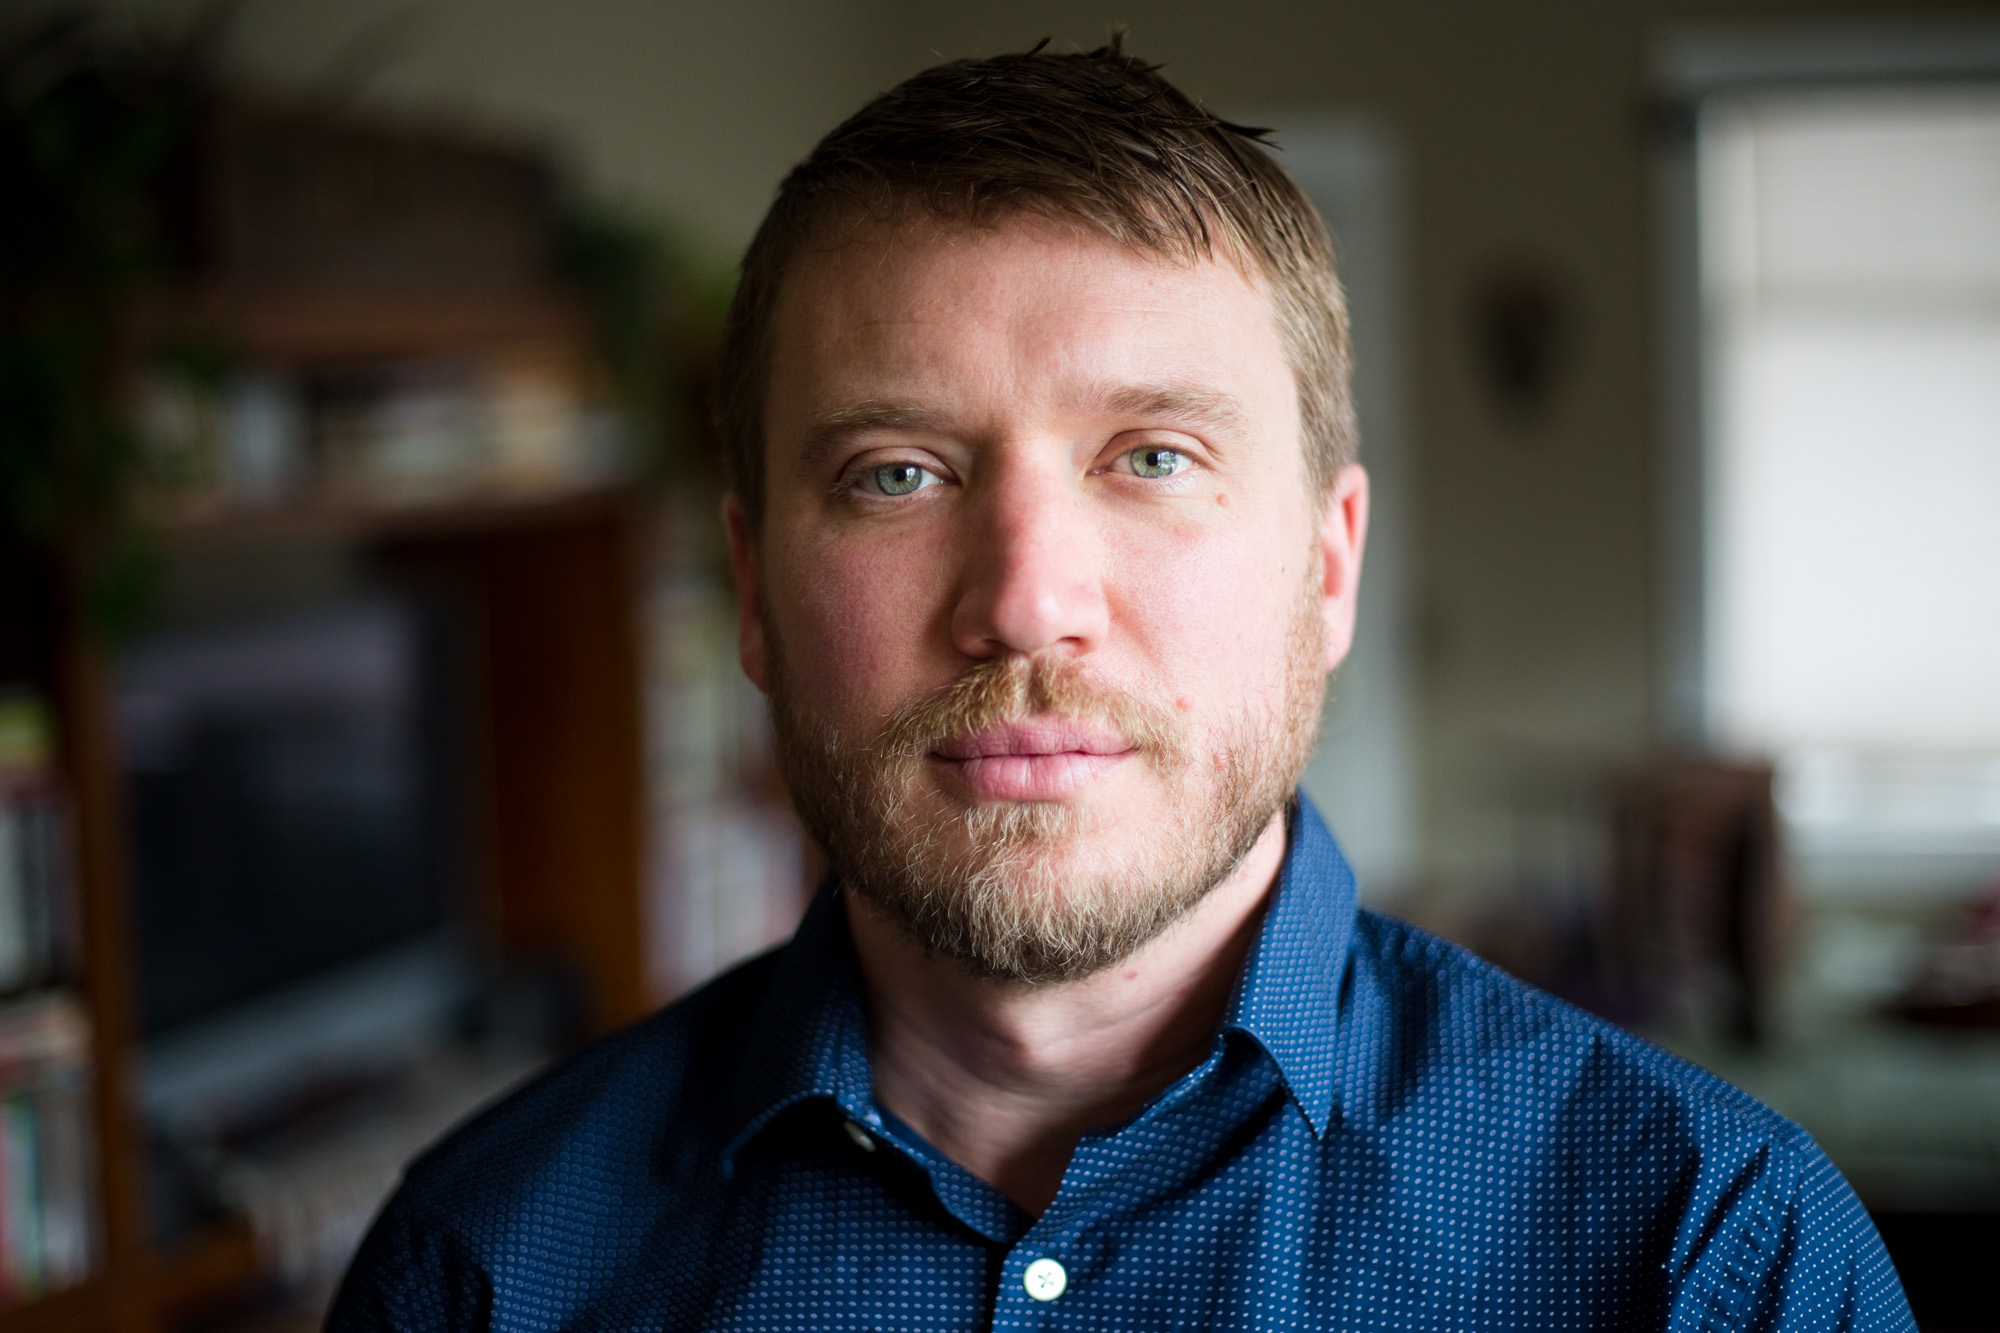 Russell Huntamer, 39, at his home